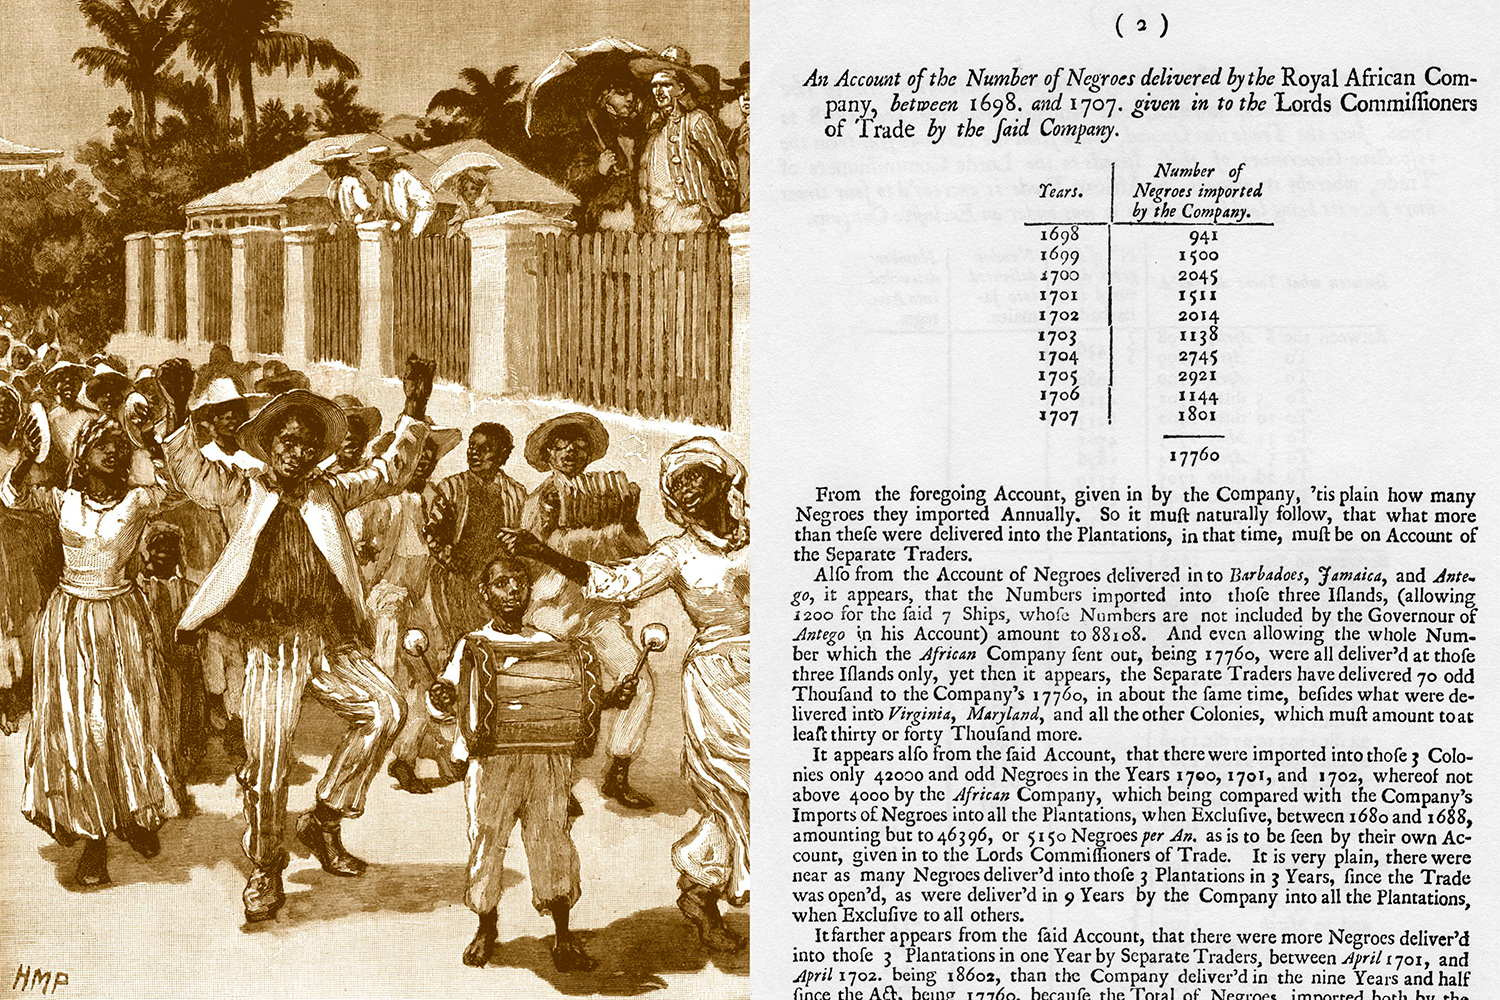 Left: A depiction of the emancipation of slaves in Barbados in 1833. Right: An account of the number of Africans delivered to the islands of Barbados, Jamaica, and Antigua for the years 1698-1701.